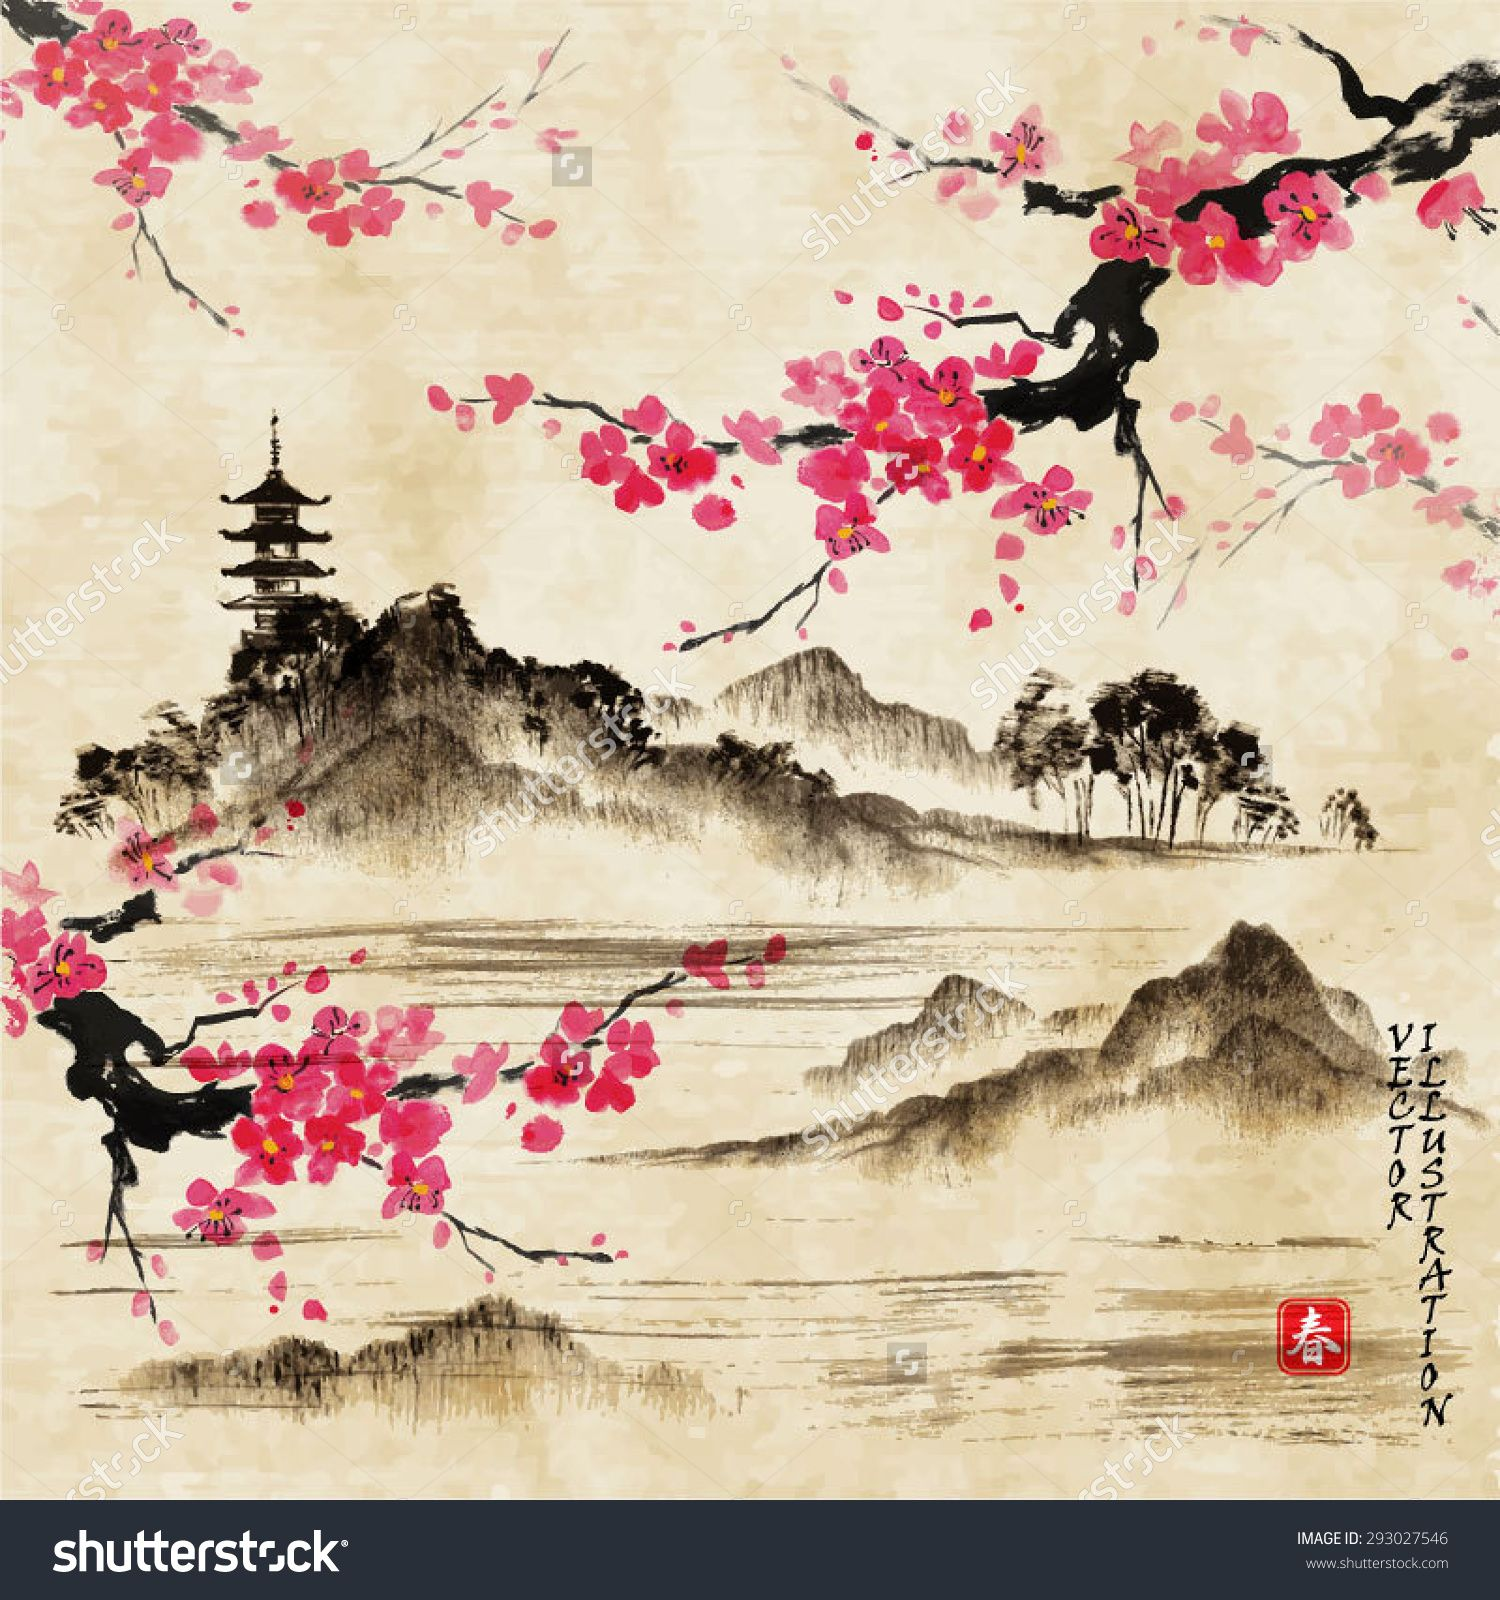 Color in japanese art - Japanese Paintings Google Search